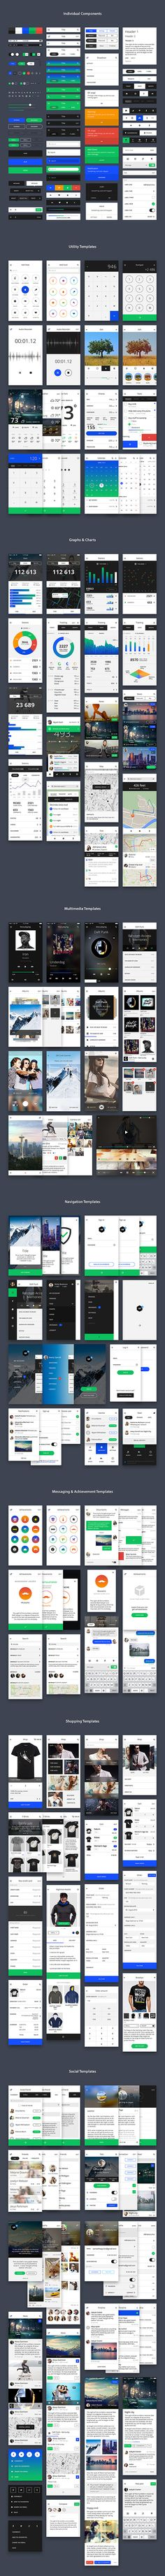 An impressive collection of individual components and templates that will allow you to easily design beautiful apps...